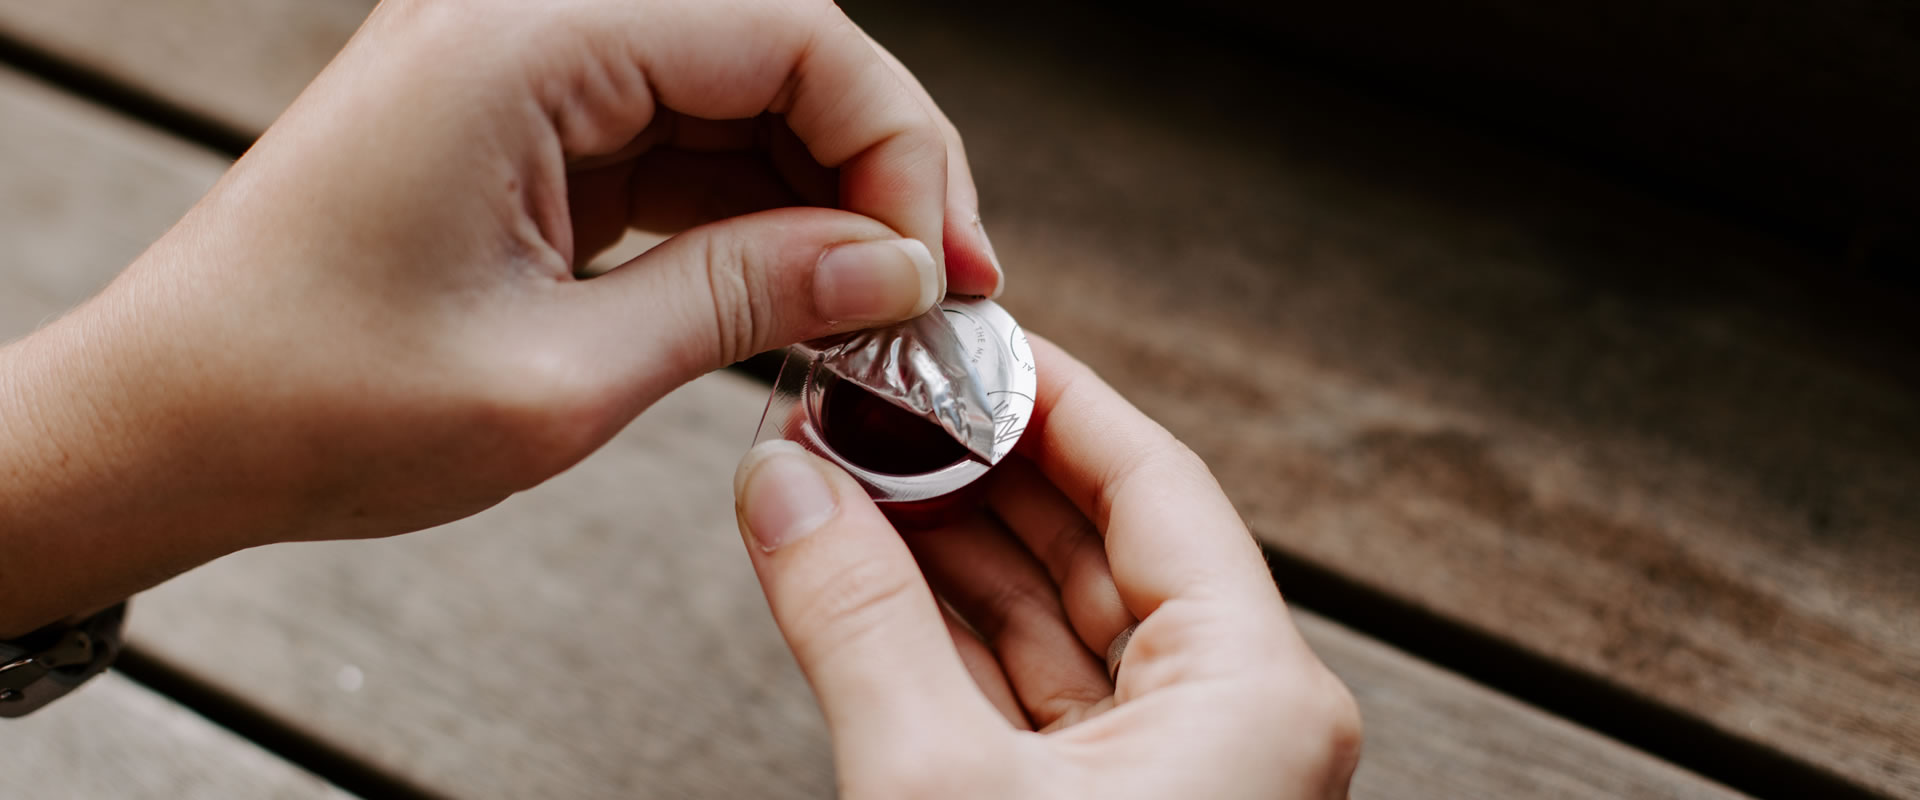 Peeling open the pre filled communion cup